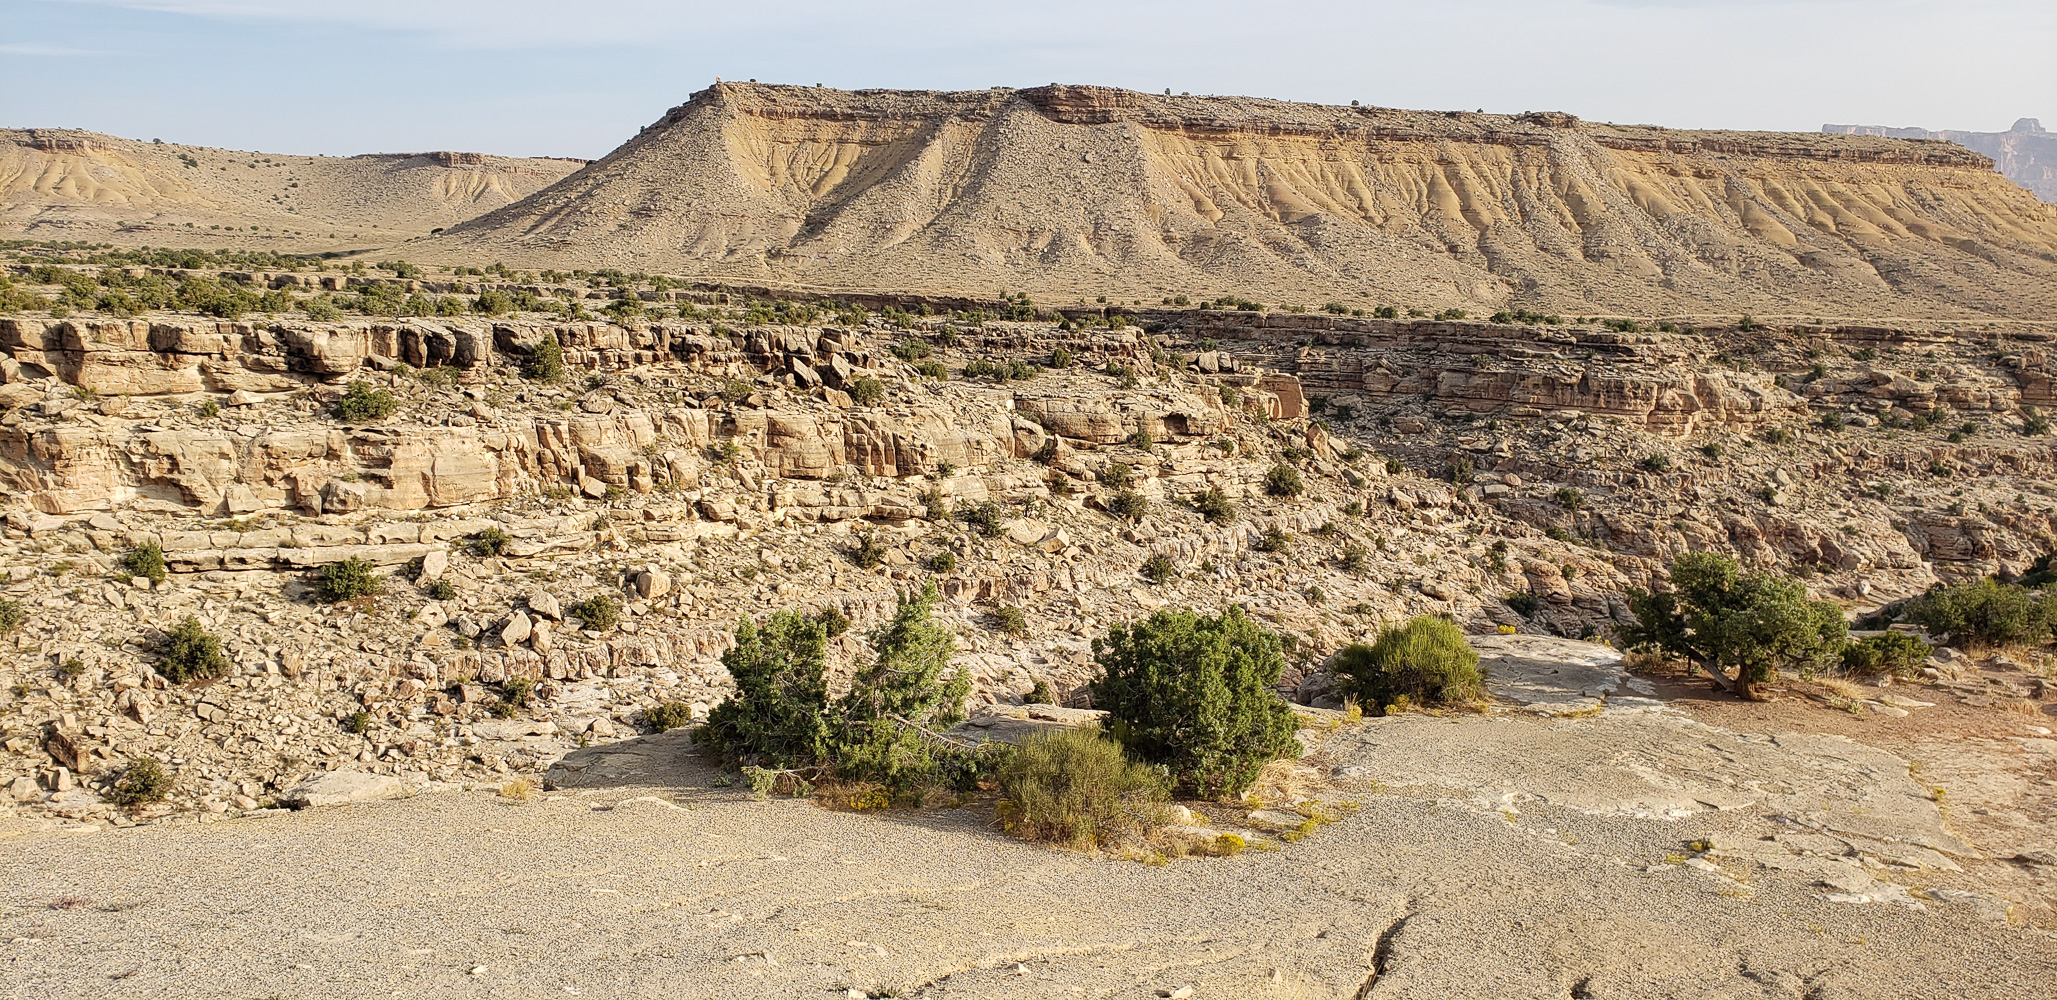 San Rafel Swell and Castle Valley area of Utah